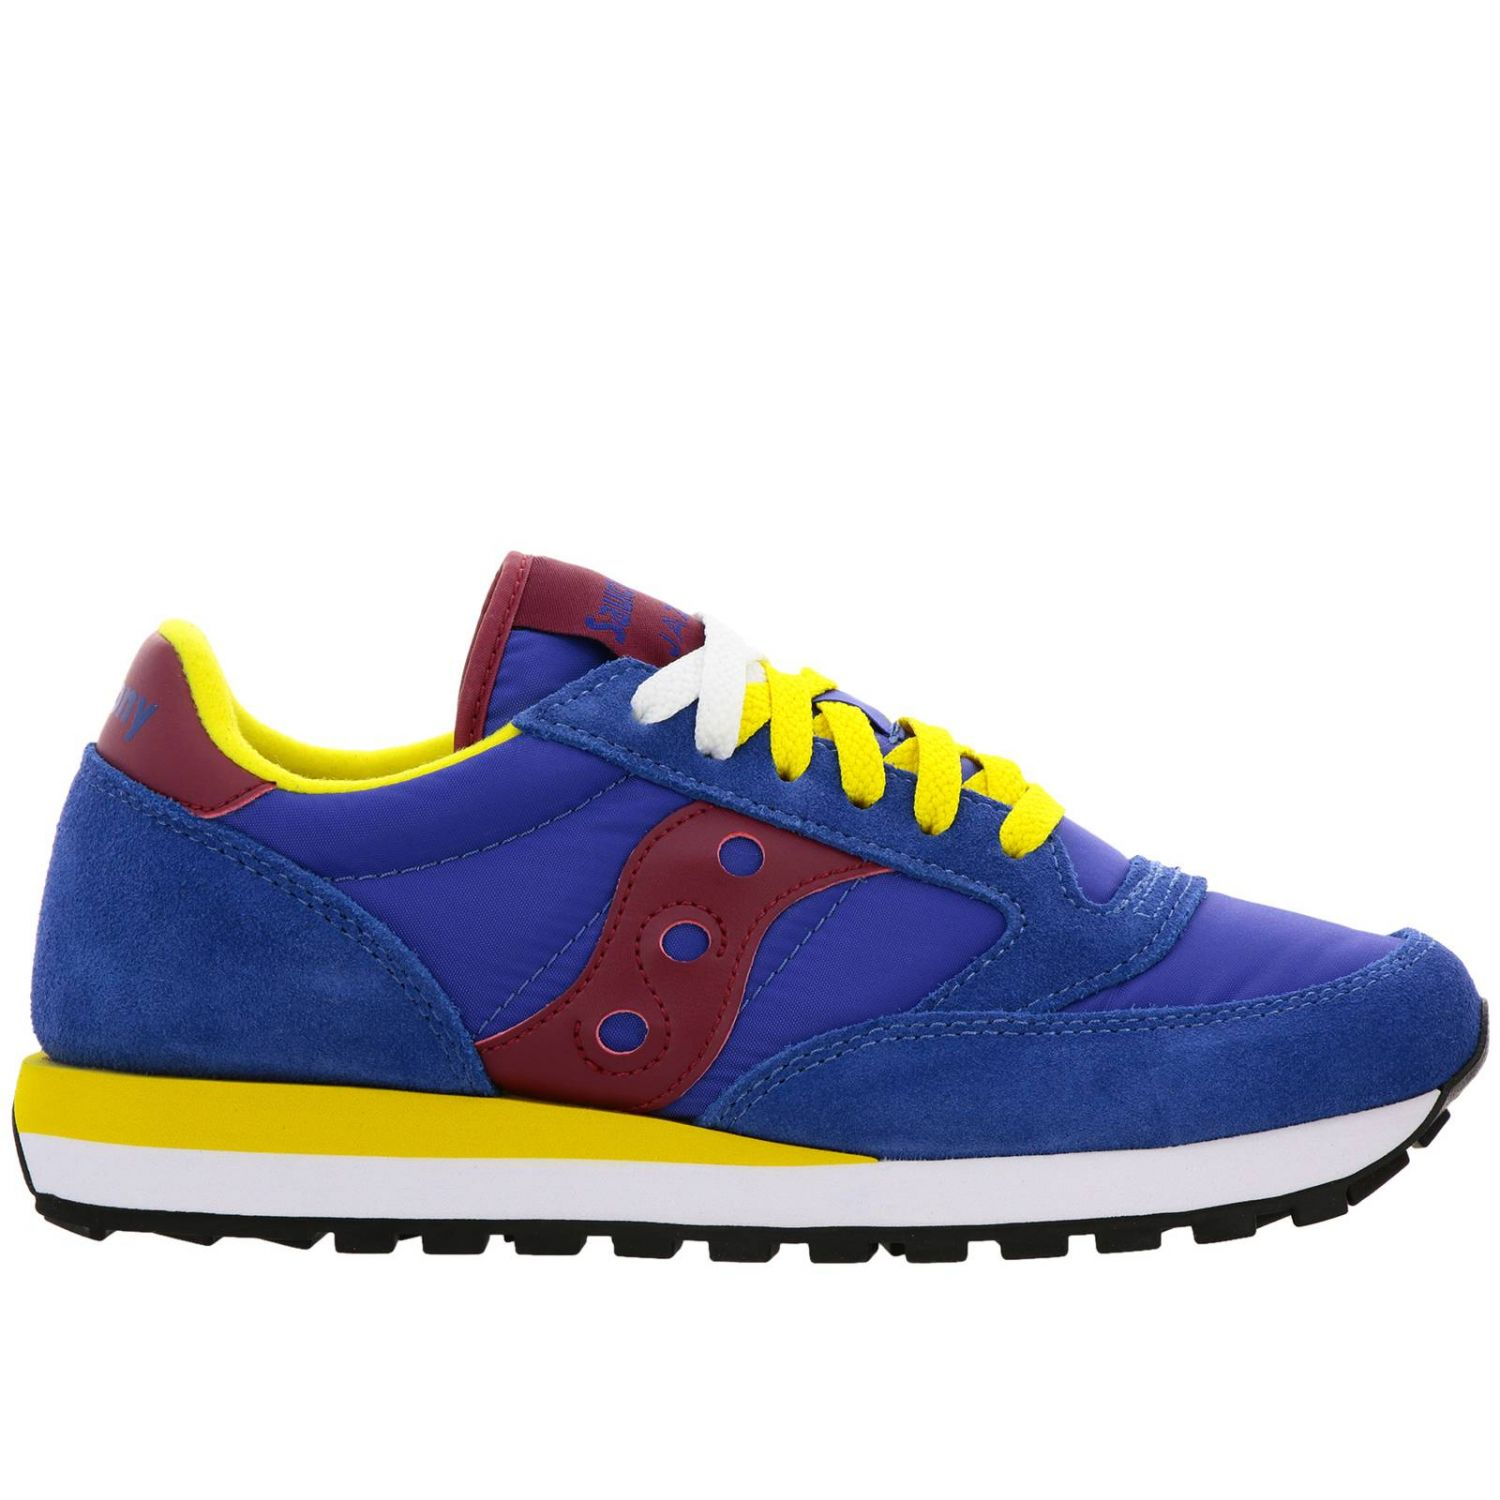 Sneakers Jazz Original Men Saucony in pelle scamosciata pelle liscia e nylon con intersuola Eva blue 1